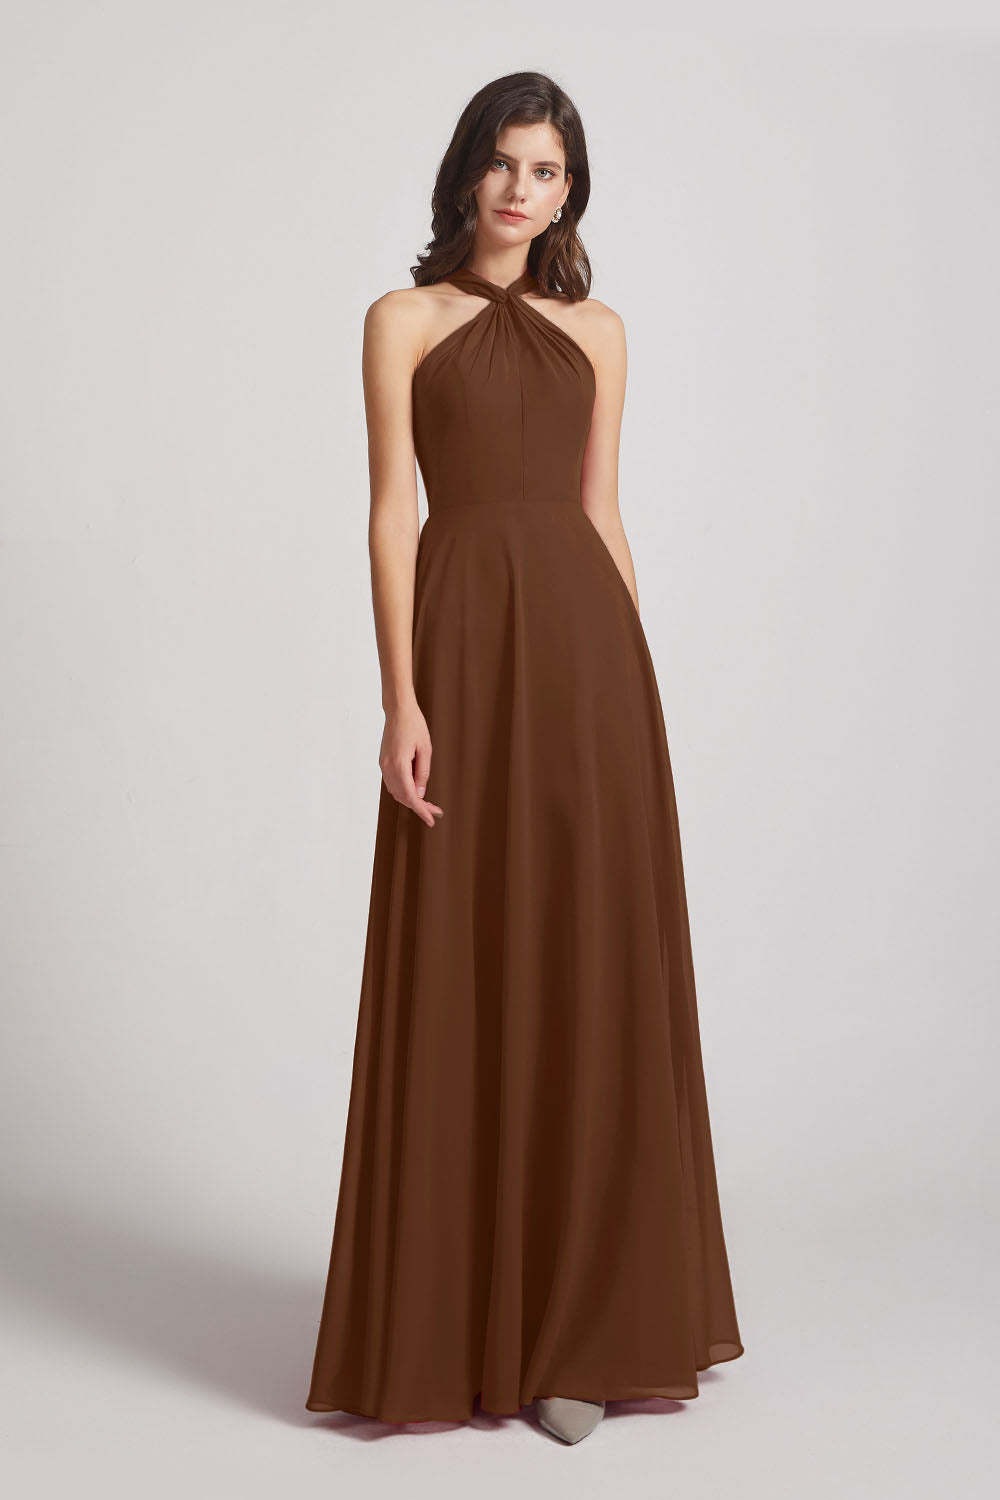 Alfa Bridal Brown Floor Length Chiffon Bridesmaid Dresses with Criss Cross Neckline (AF0113)